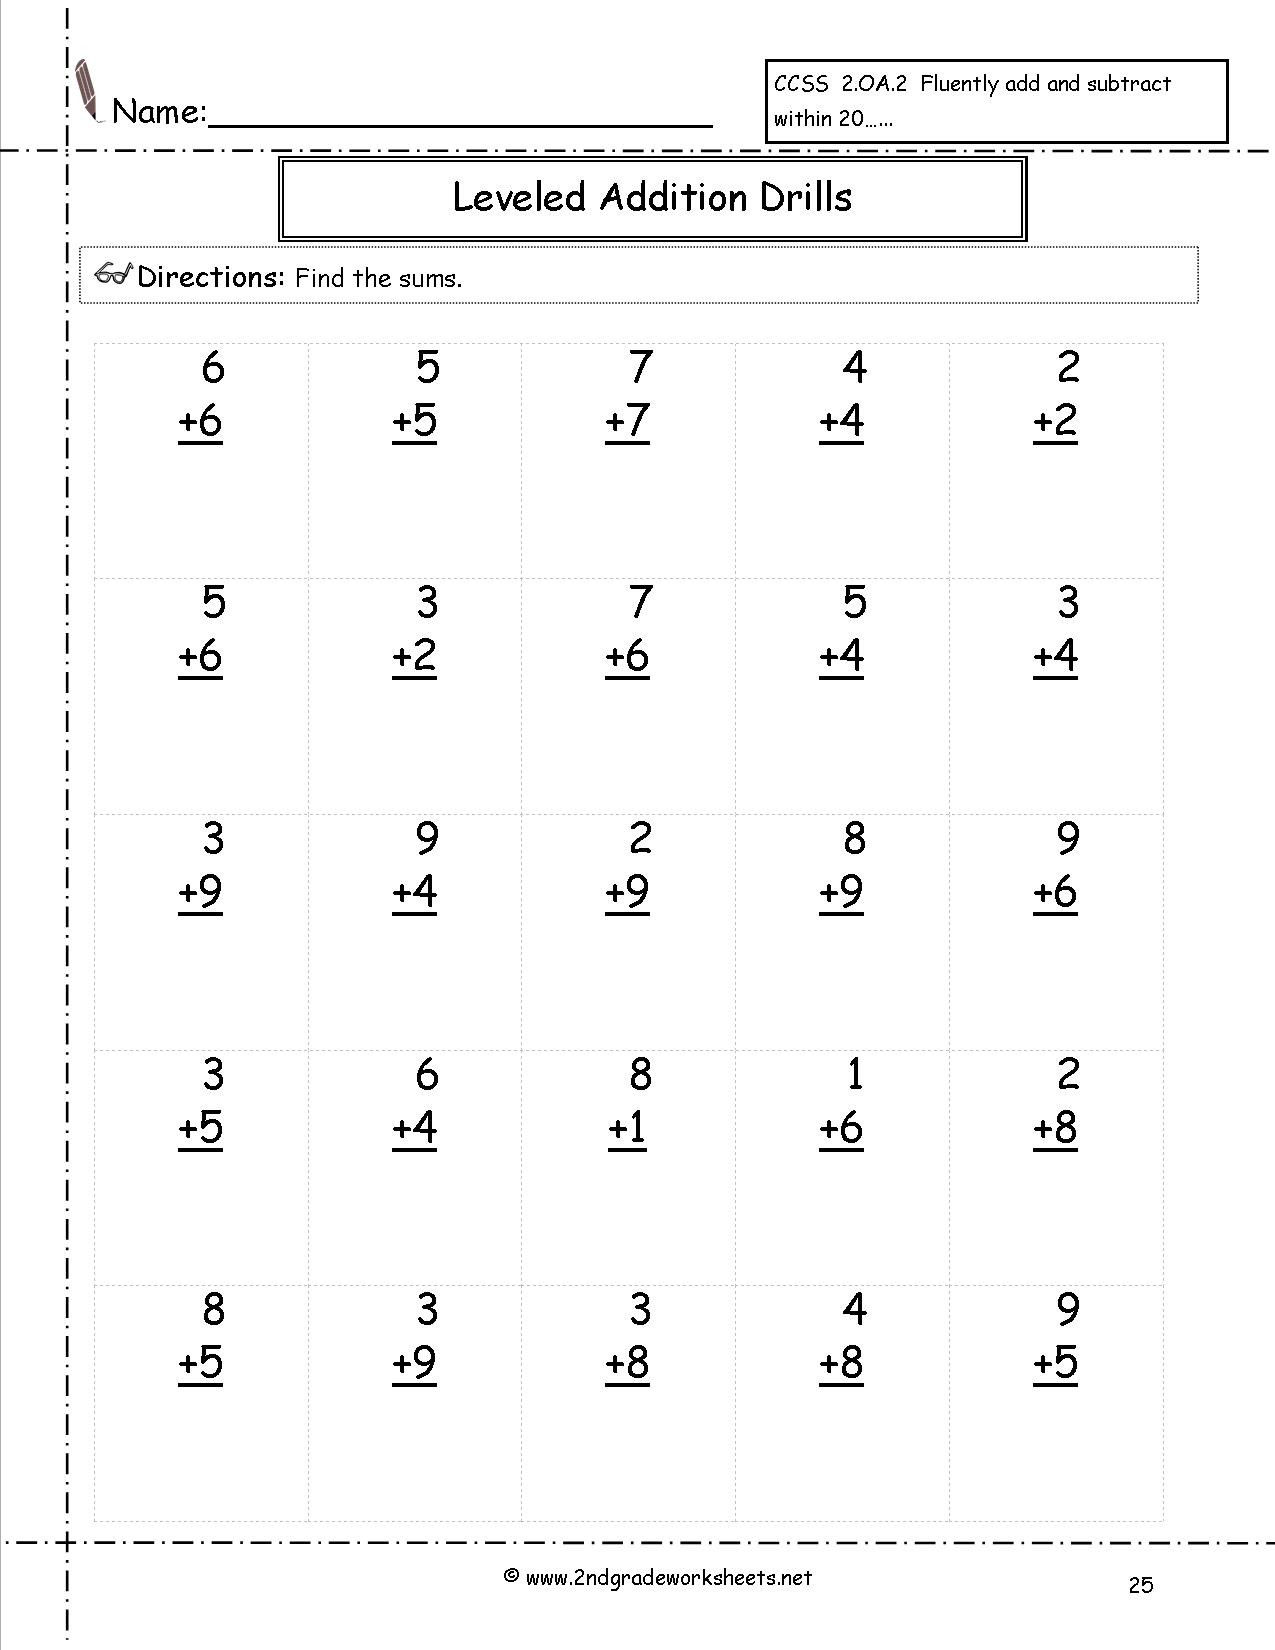 Simple Subtraction Worksheets for Kindergarten Free Math Worksheets and Printouts